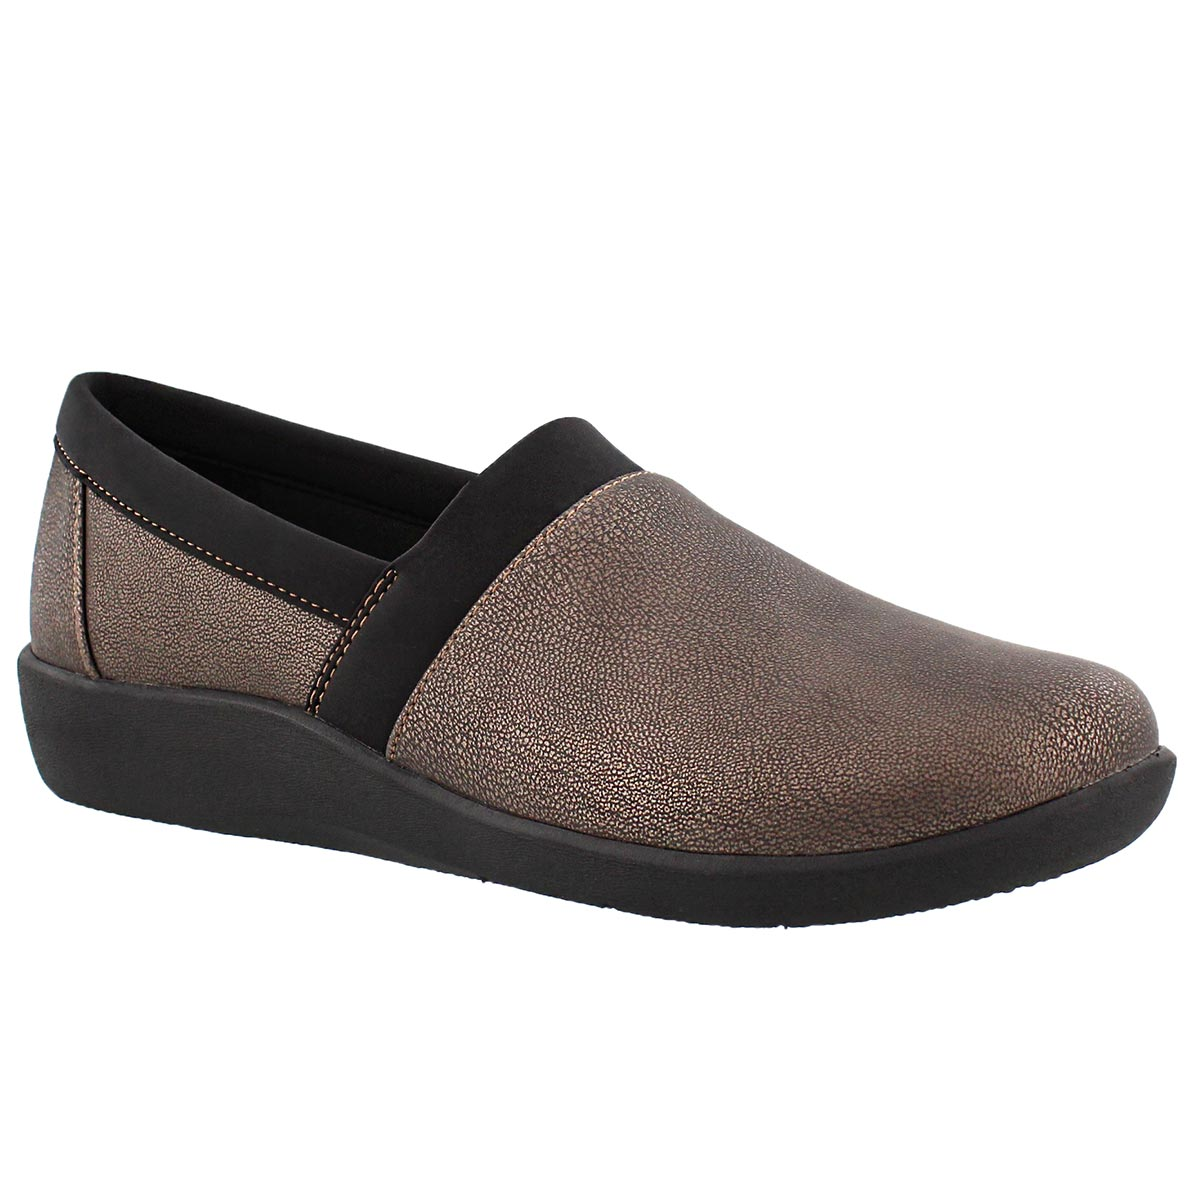 Lds Sillian Blair bronze slip on loafer